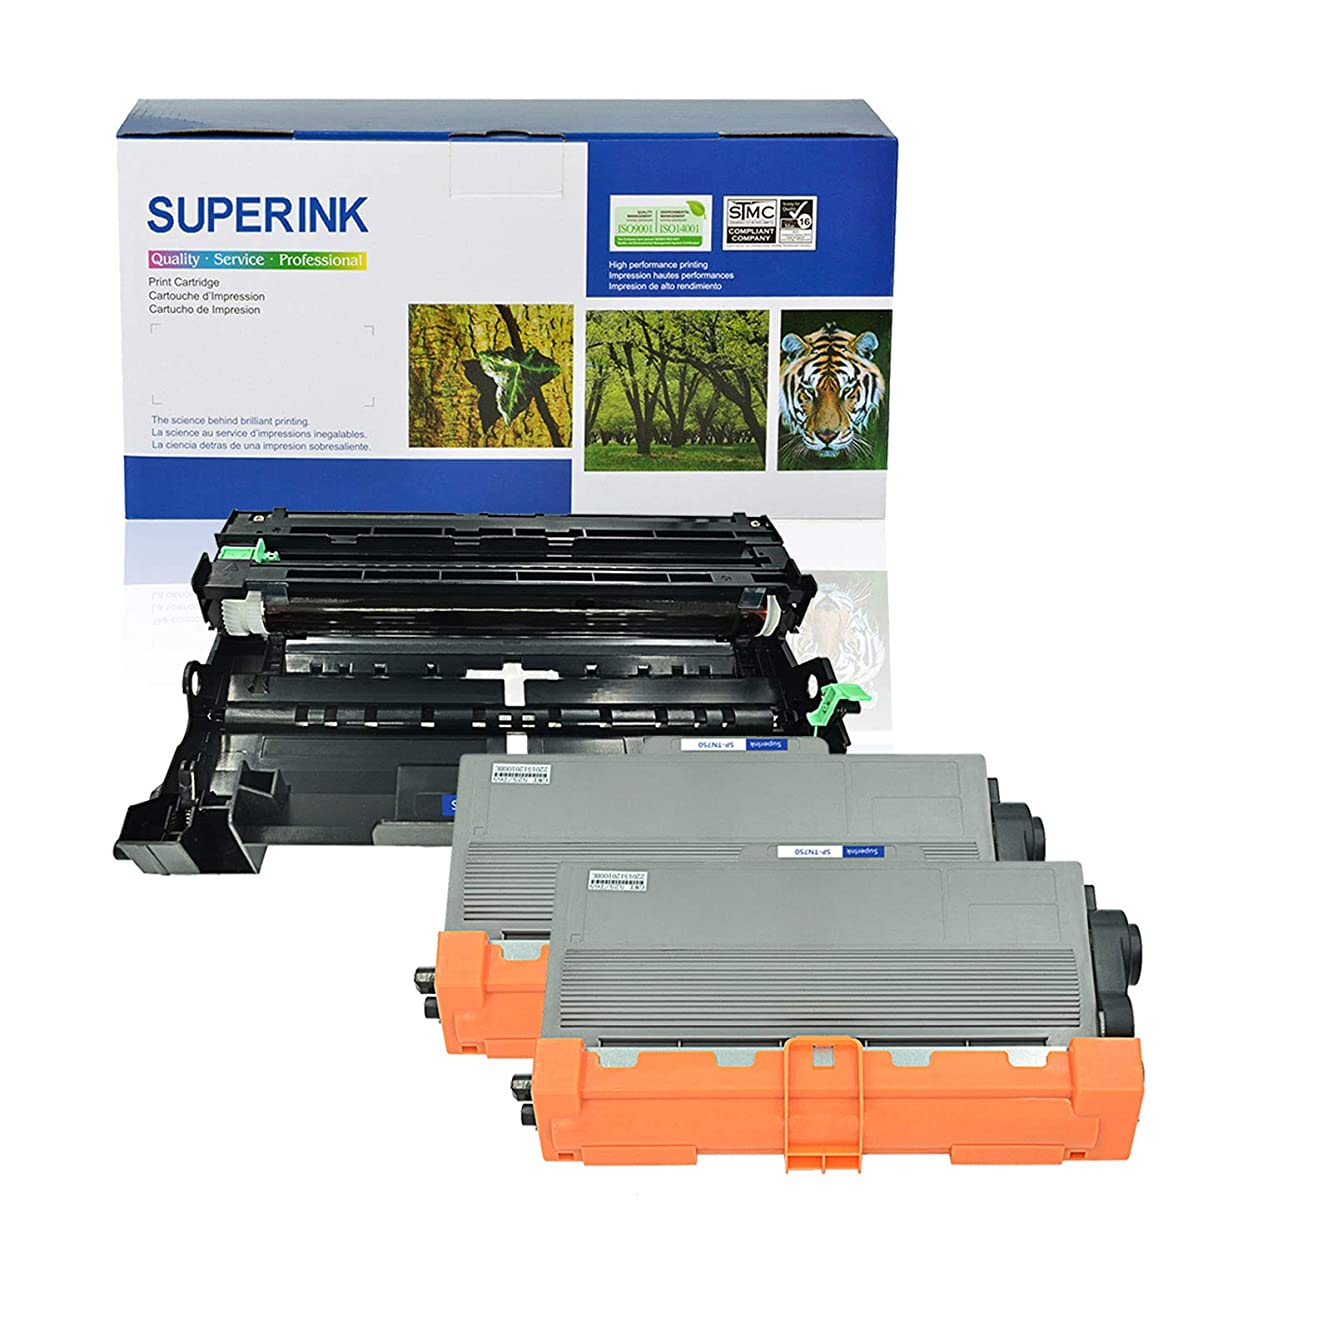 SuperInk 3 Pack Toner Cartridge and Drum Unit Set Compatible for Brother TN750 DR-720 (2 Toner, 1 Drum) use in DCP-8110DN DCP-8150DN HL-5450DN HL-6180DW MFC-8510DN MFC-8710DW MFC-8950DW Printer